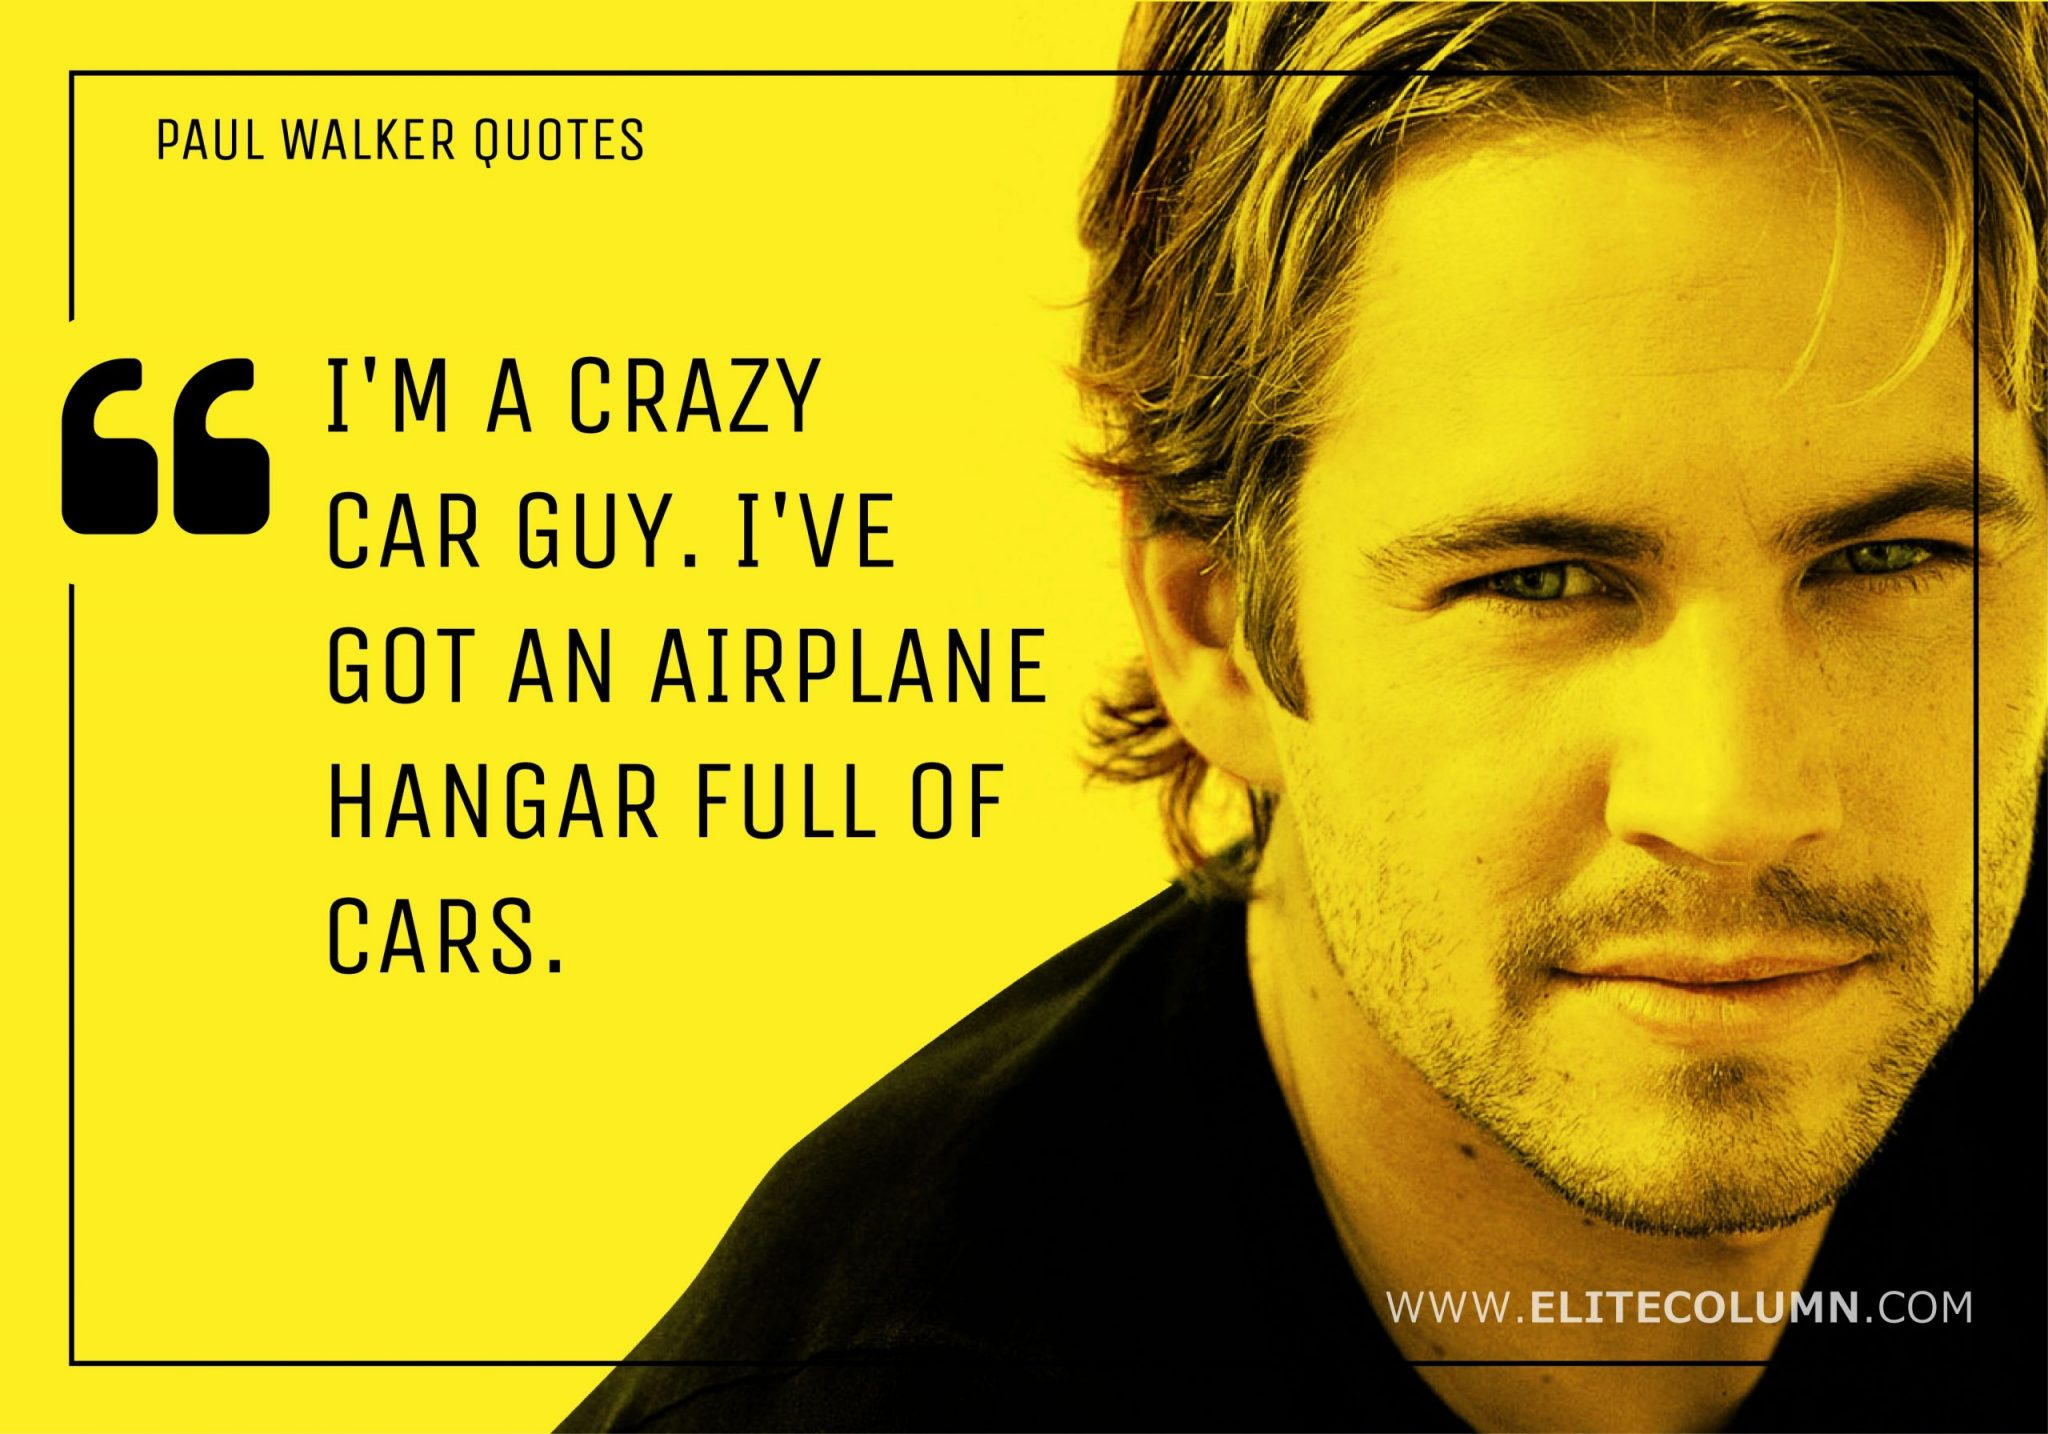 Paul Walker Quotes (5)